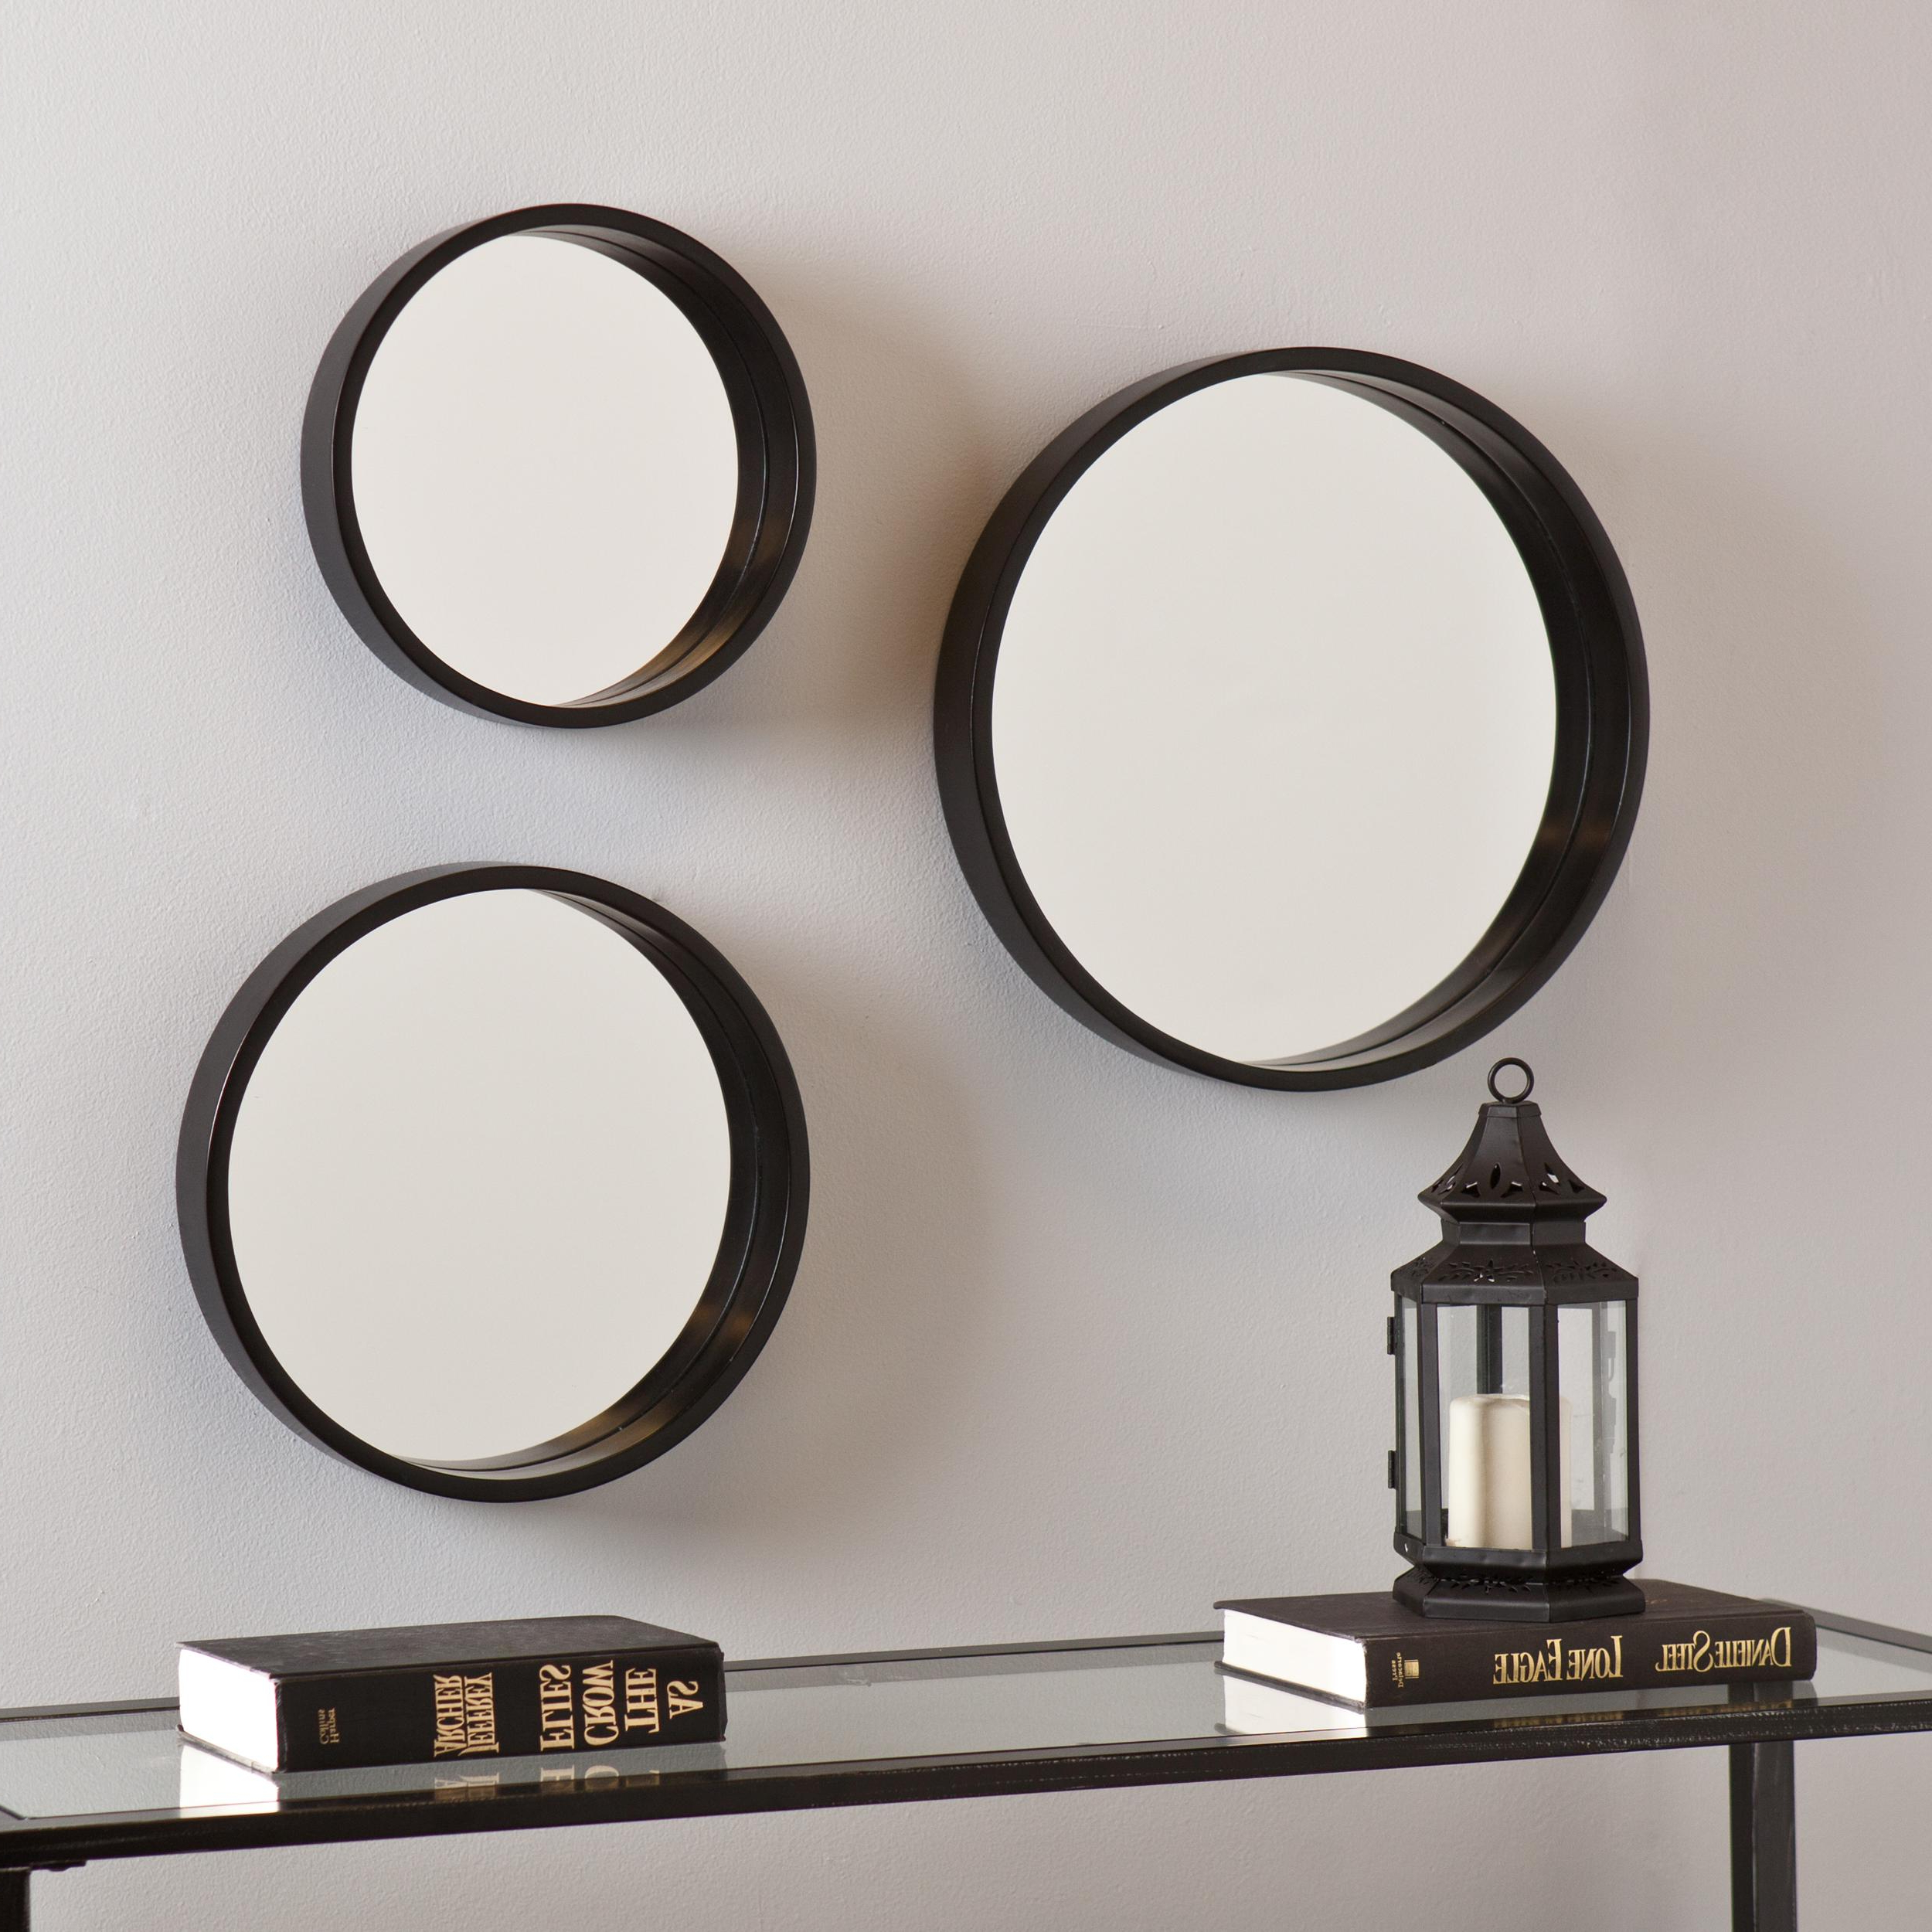 Widely Used Joyous Wall Mirror Sets In Conjunction With Antique With Regard To Set Of Wall Mirrors (View 6 of 20)